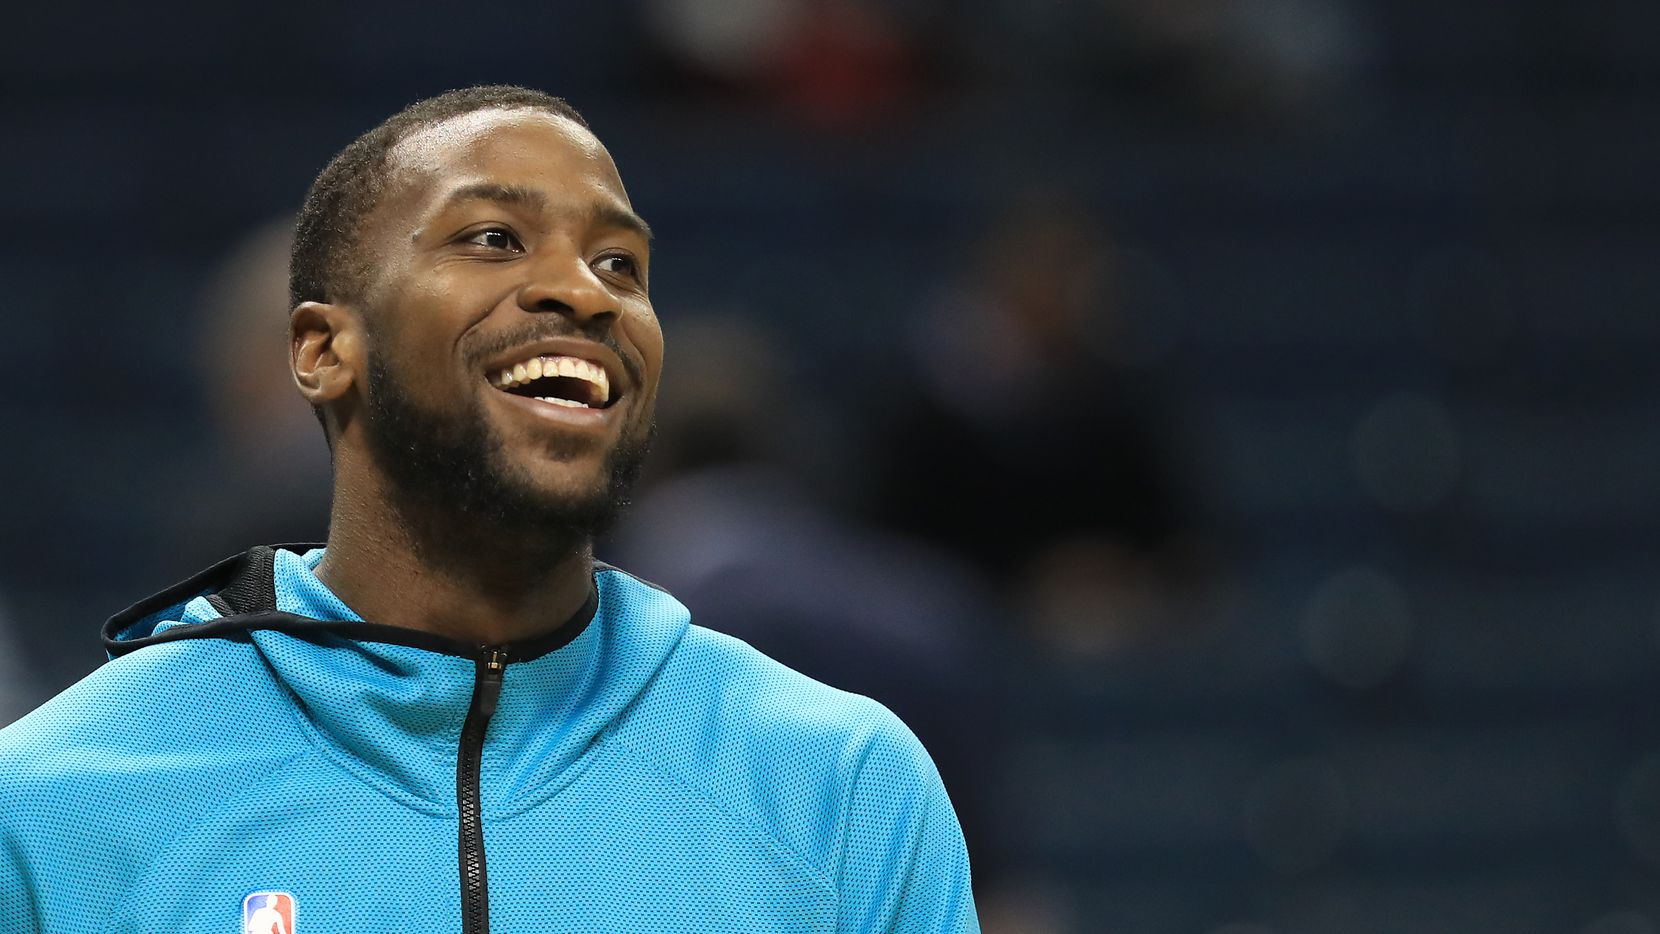 CHARLOTTE, NORTH CAROLINA - NOVEMBER 05: Michael Kidd-Gilchrist #14 of the Charlotte Hornets watches on before their game against the Indiana Pacers at Spectrum Center on November 05, 2019 in Charlotte, North Carolina. NOTE TO USER: User expressly acknowledges and agrees that, by downloading and or using this photograph, User is consenting to the terms and conditions of the Getty Images License Agreement.